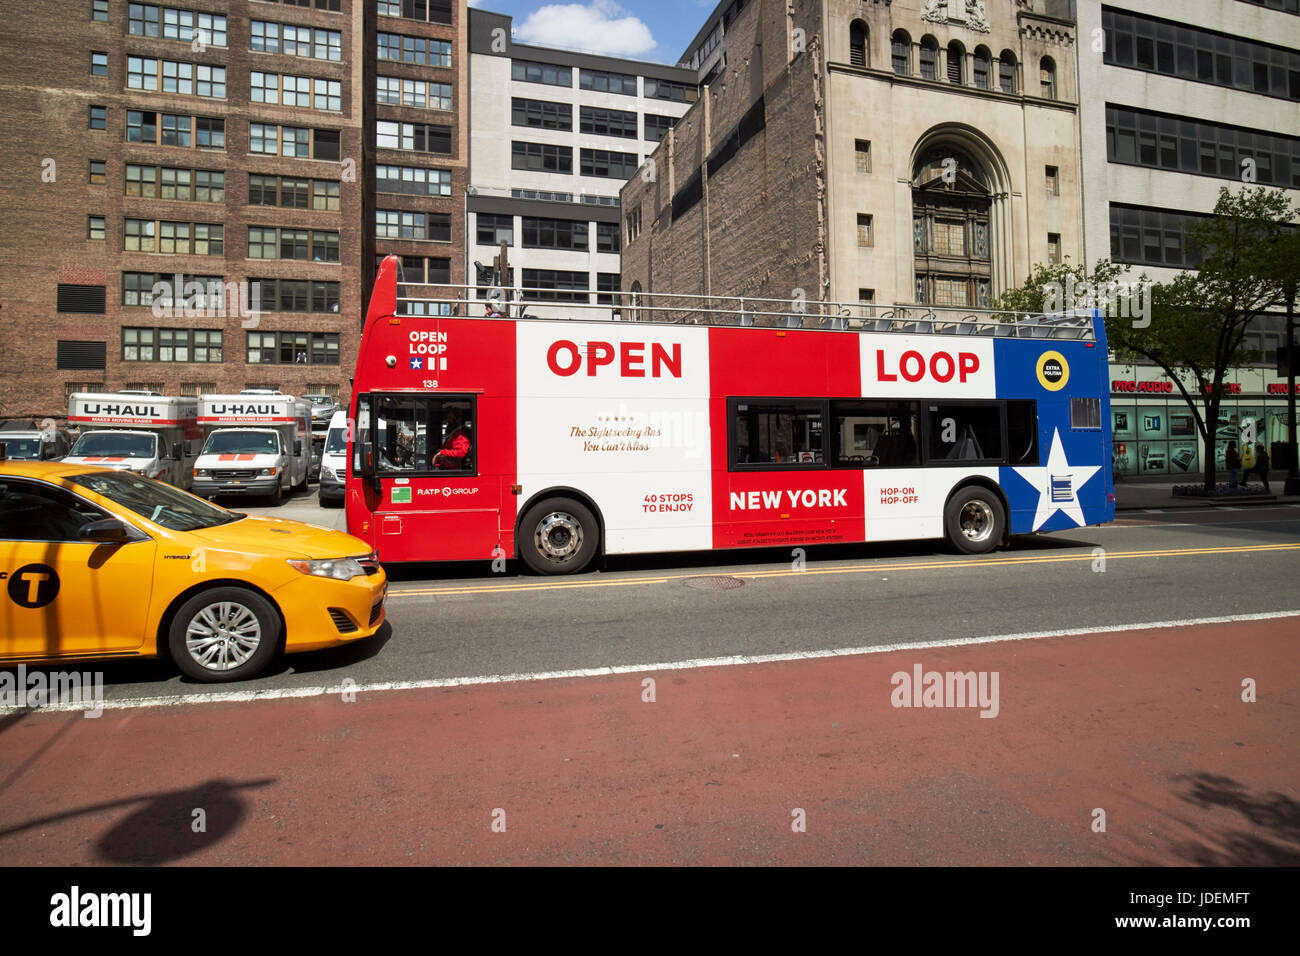 open loop guided tour double deck bus New York City USA - Stock Image